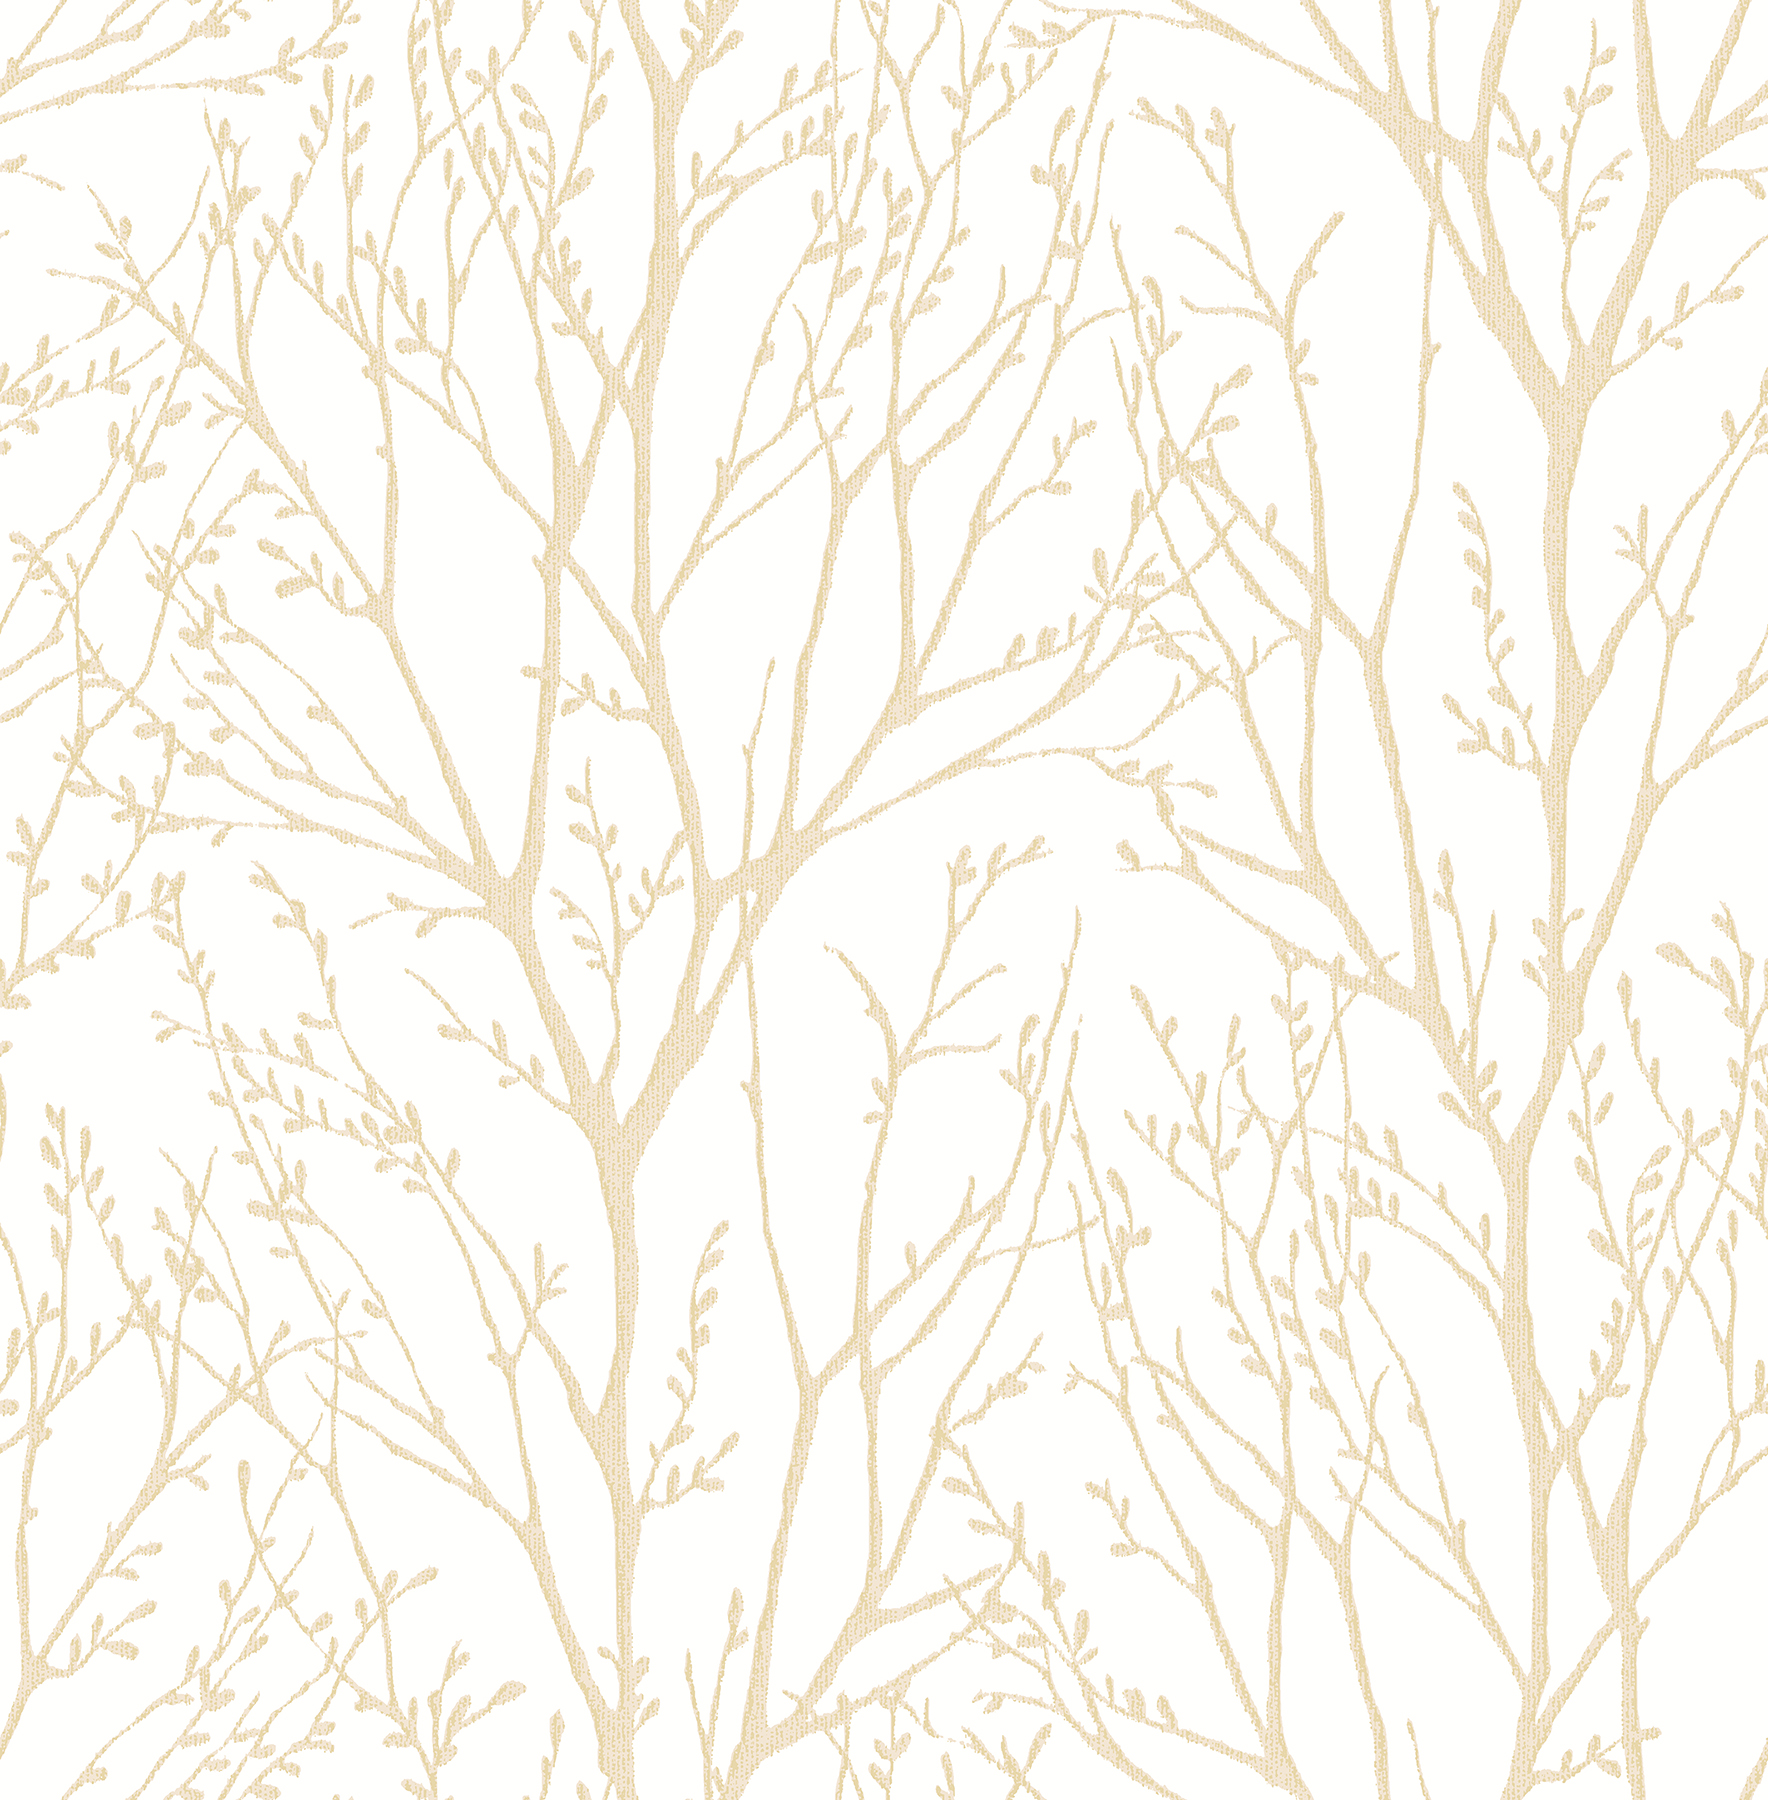 Kenneth James by Brewster 2671-22442 Autumn Gold Tree Wallpaper